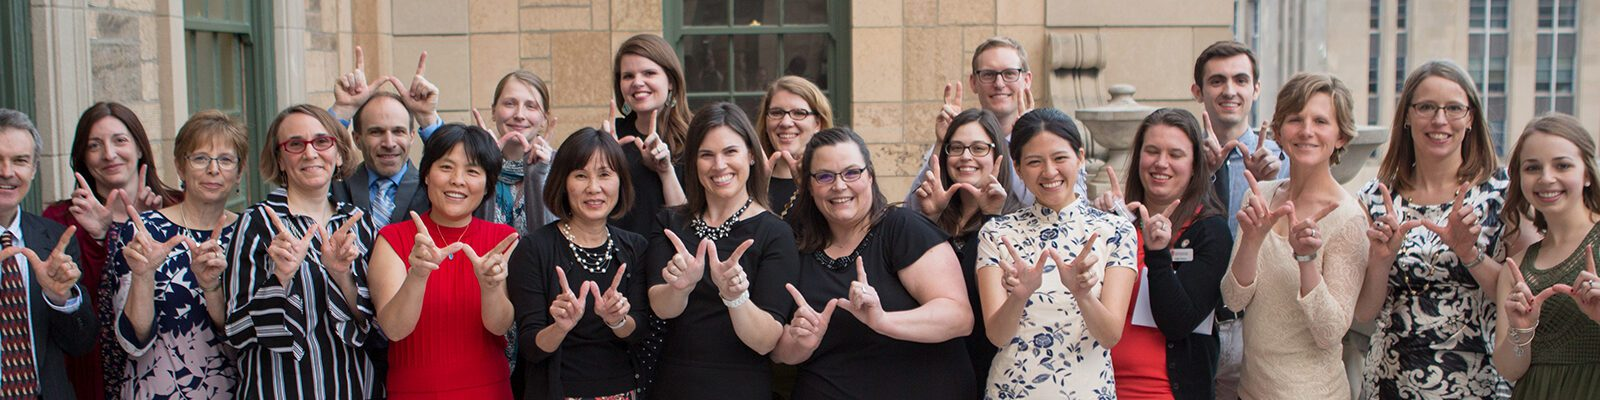 ACSSS staff make a 'W' with their hands after the Returning Student Awards Ceremony in 2018.